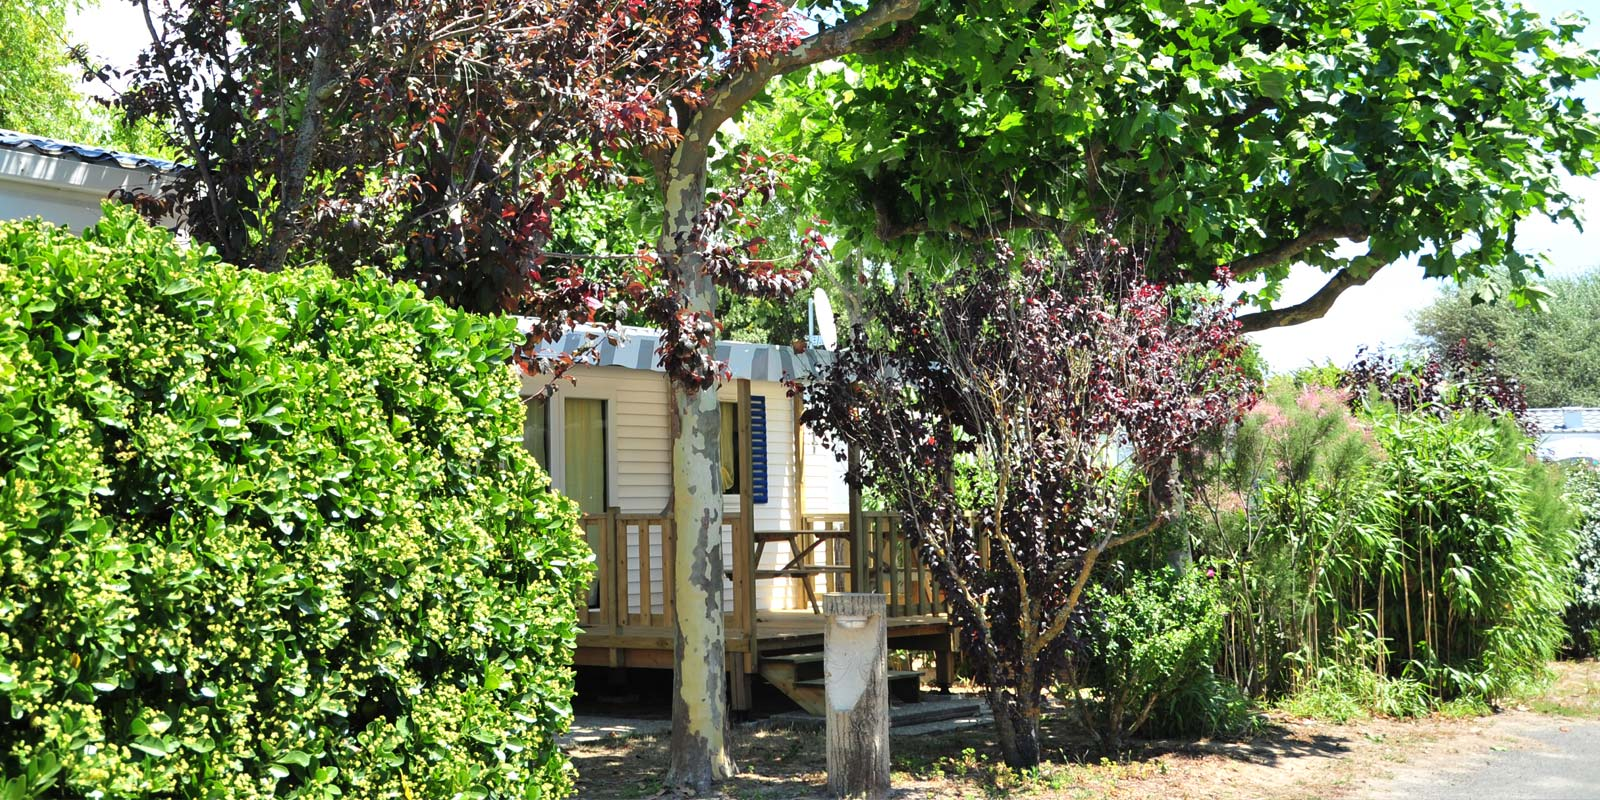 Trees in front of a mobile home at the campsite park in Saint-Hilaire